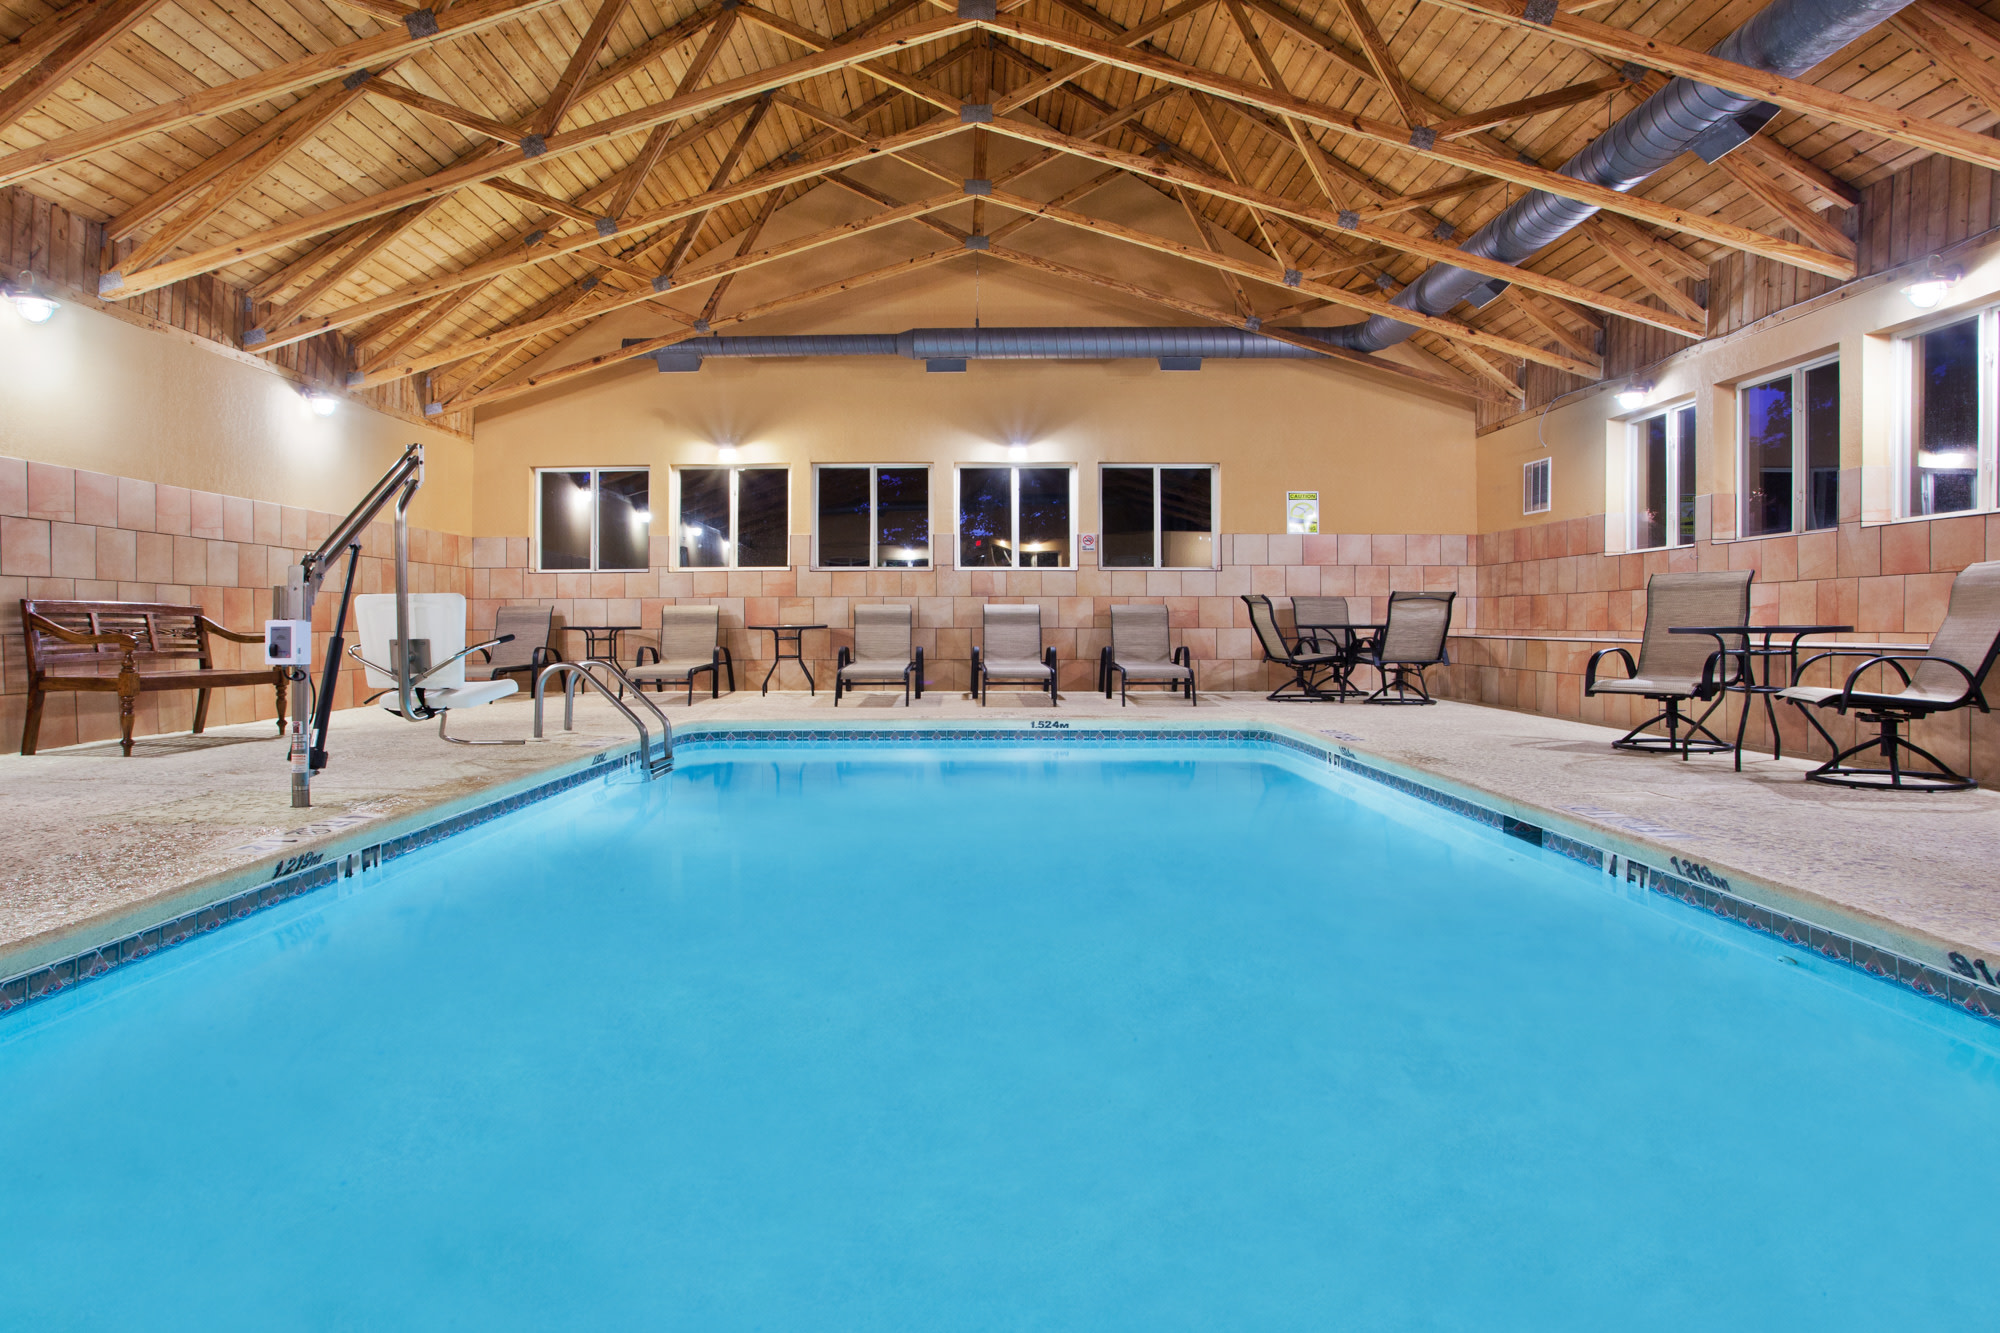 Indoor pool at the Comfort Inn - Blairsville